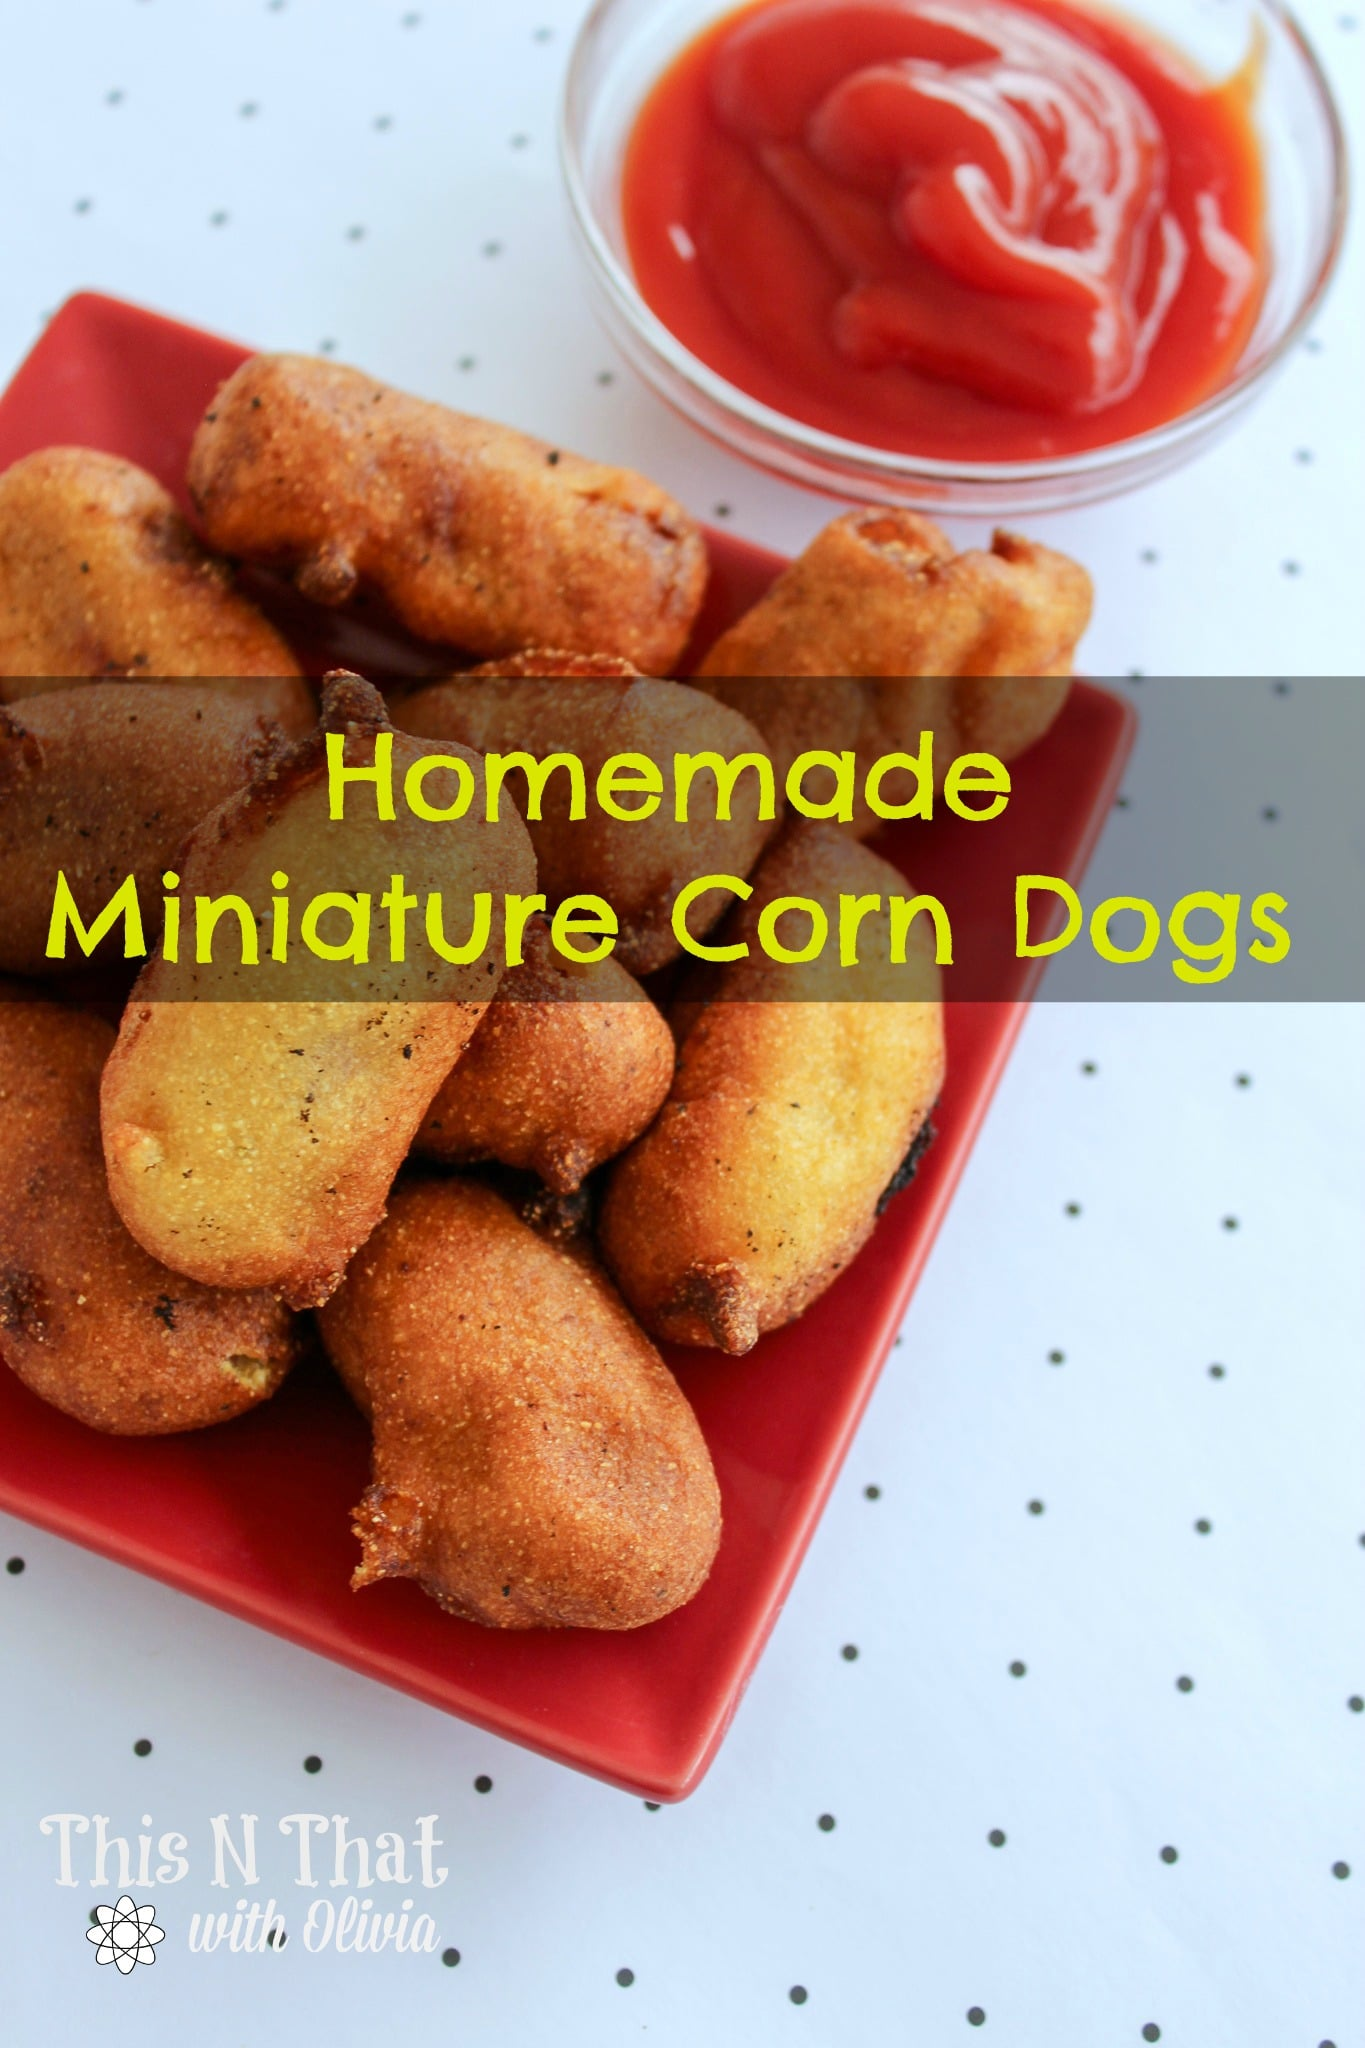 Homemade Miniature Corn Dogs